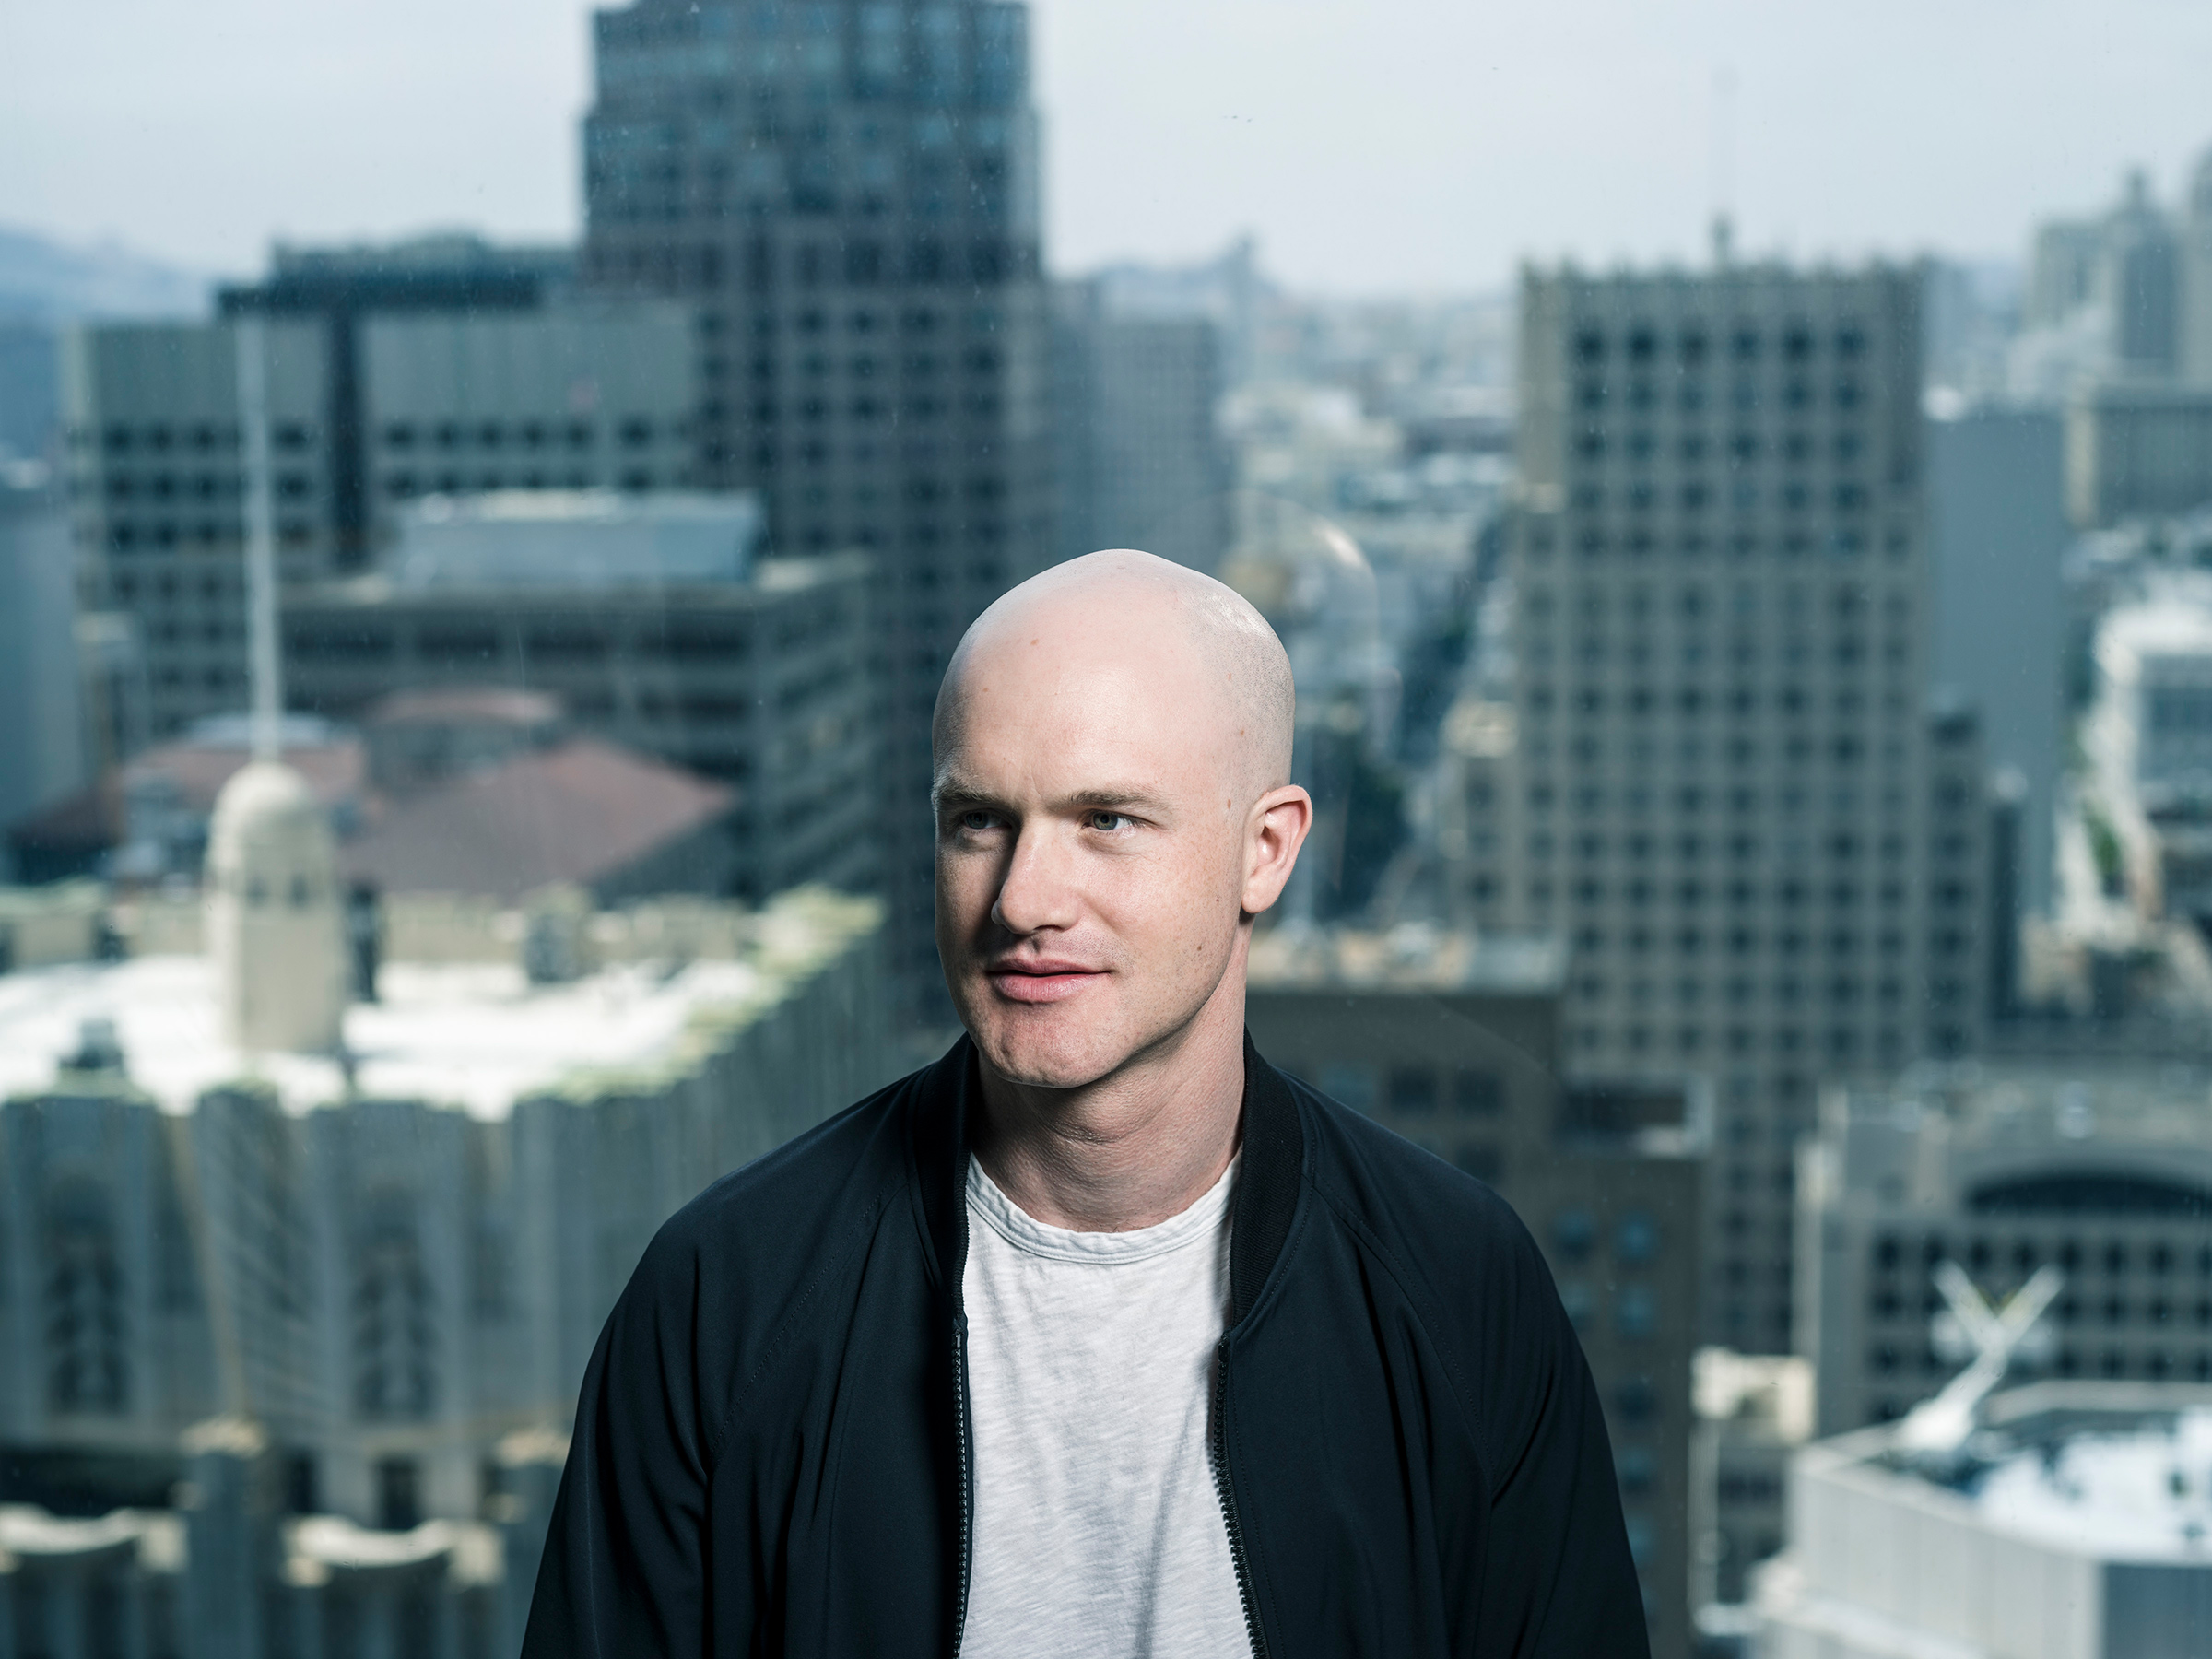 Brian Armstrong, CEO of Coinbase, at the company's main office in San Francisco on August 7, 2017.